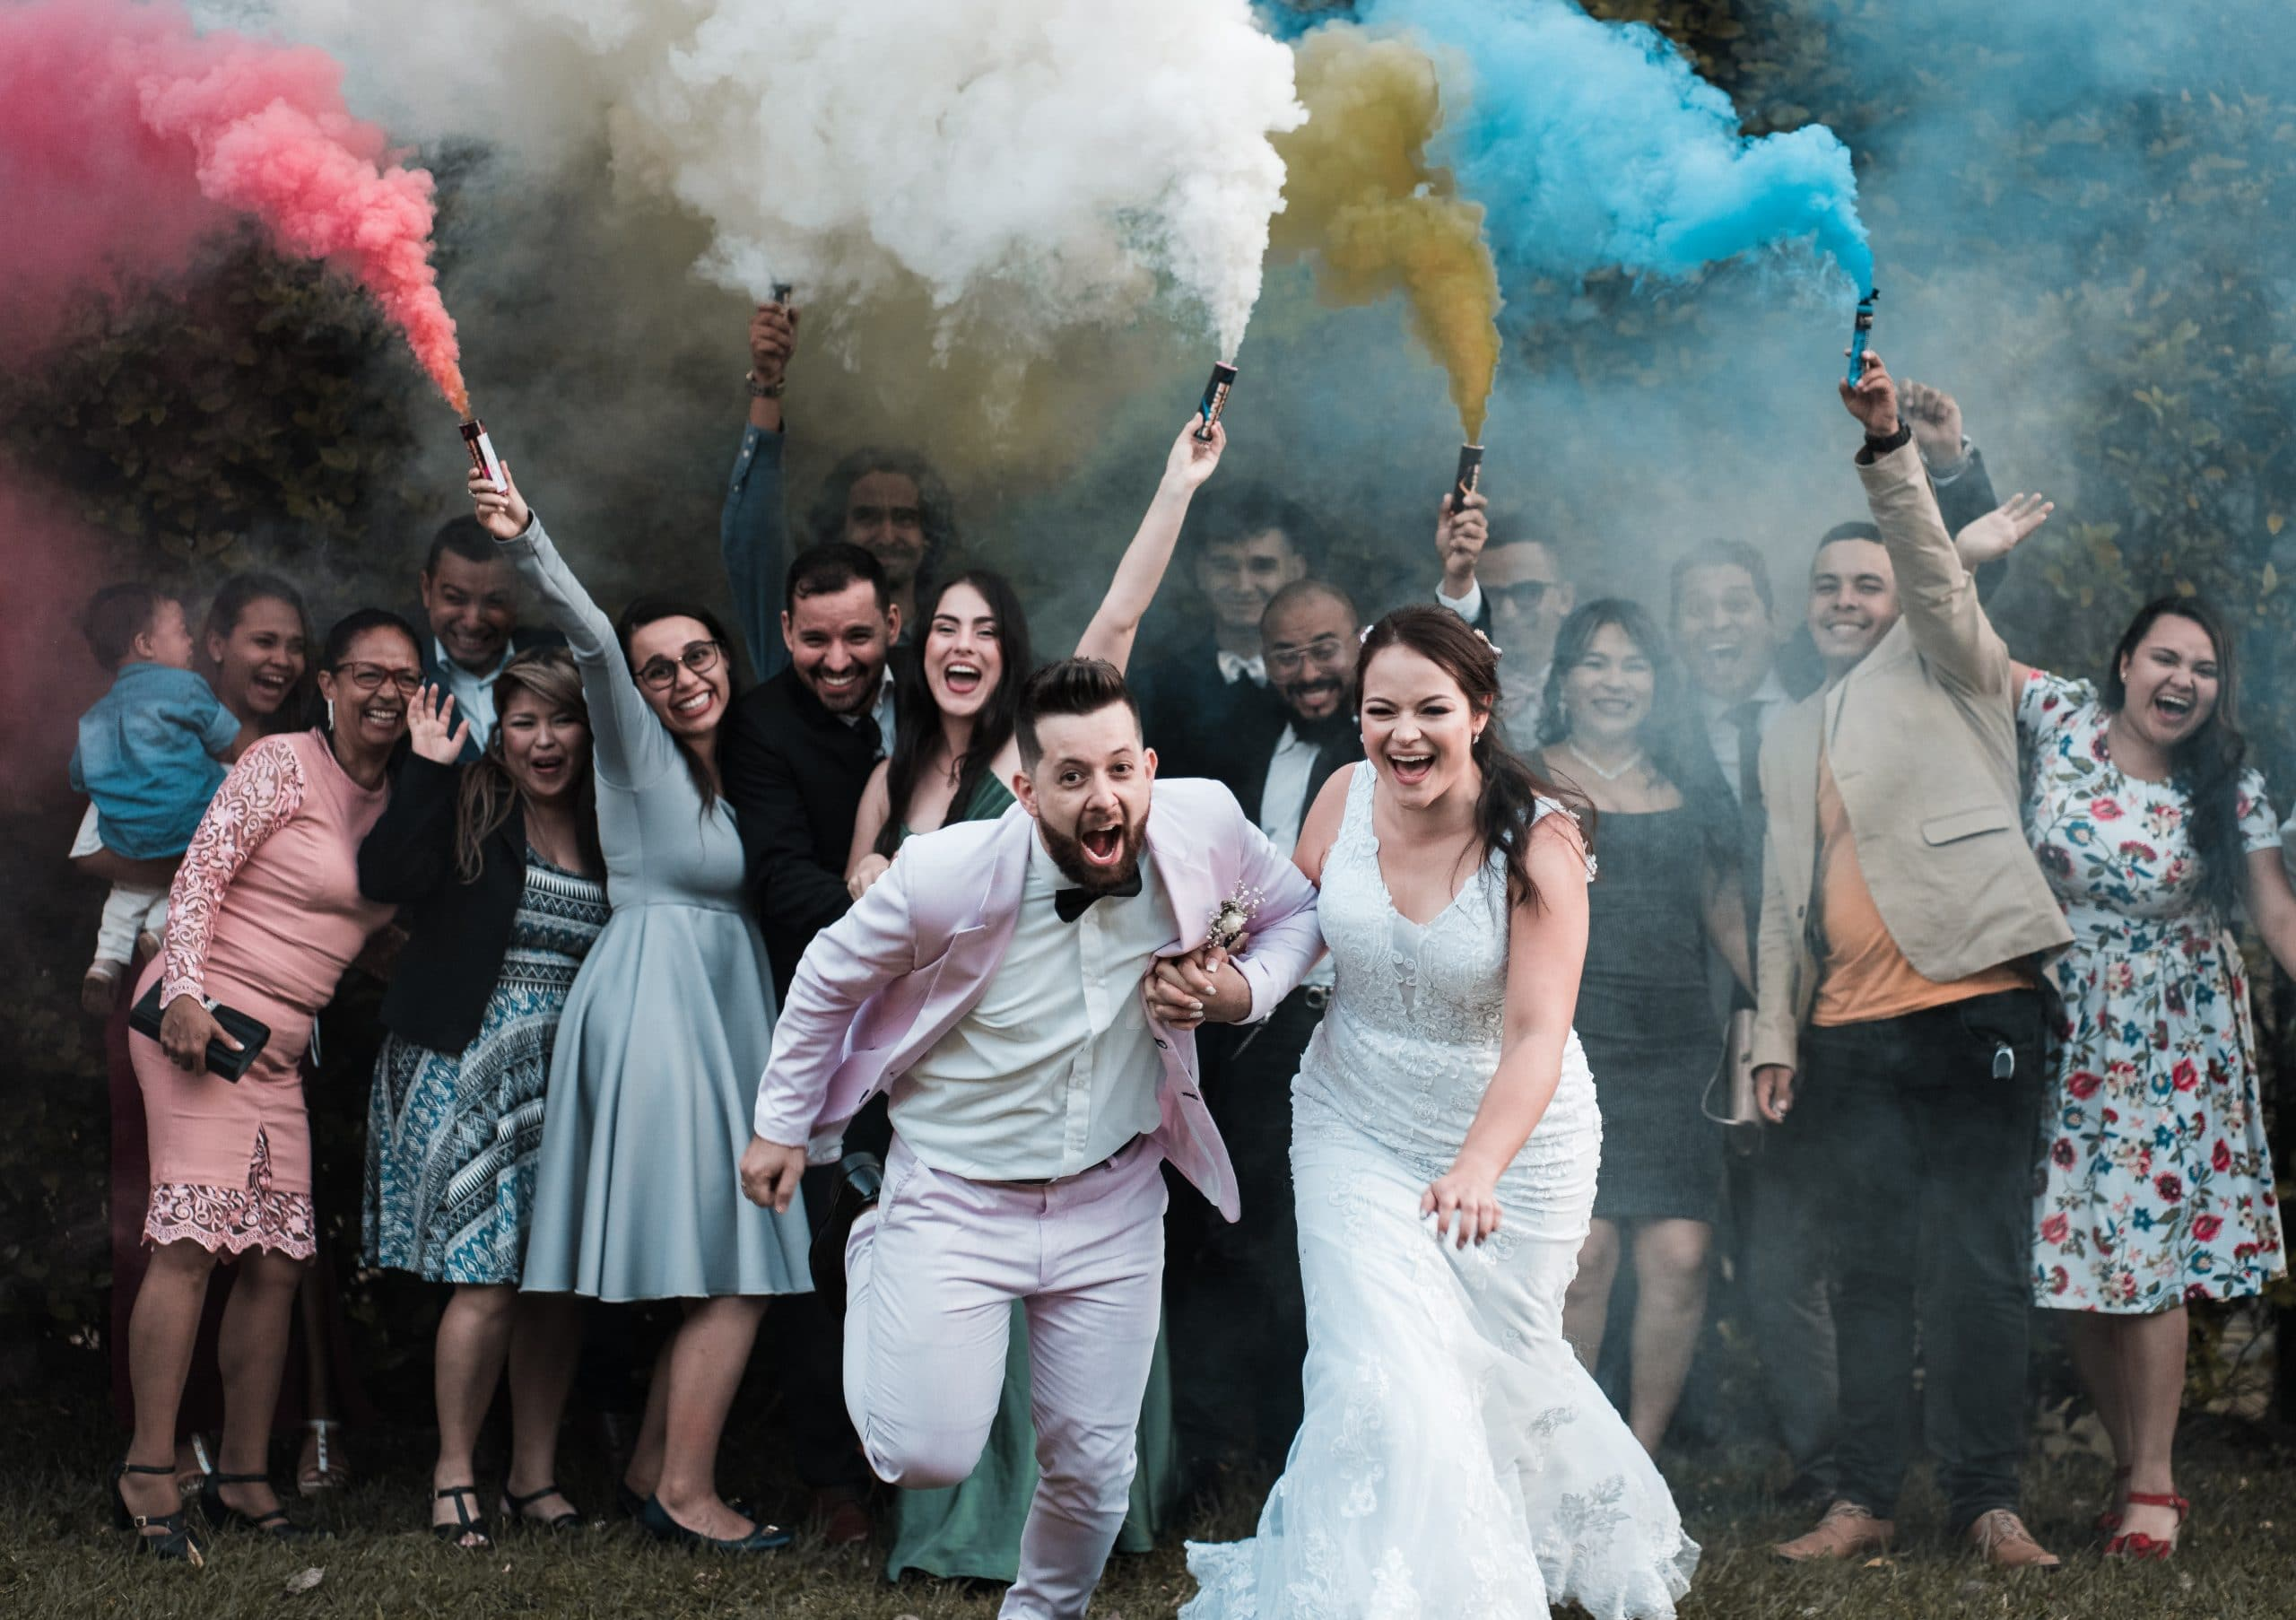 Cheerful wedding - Tips for Wedding Photography